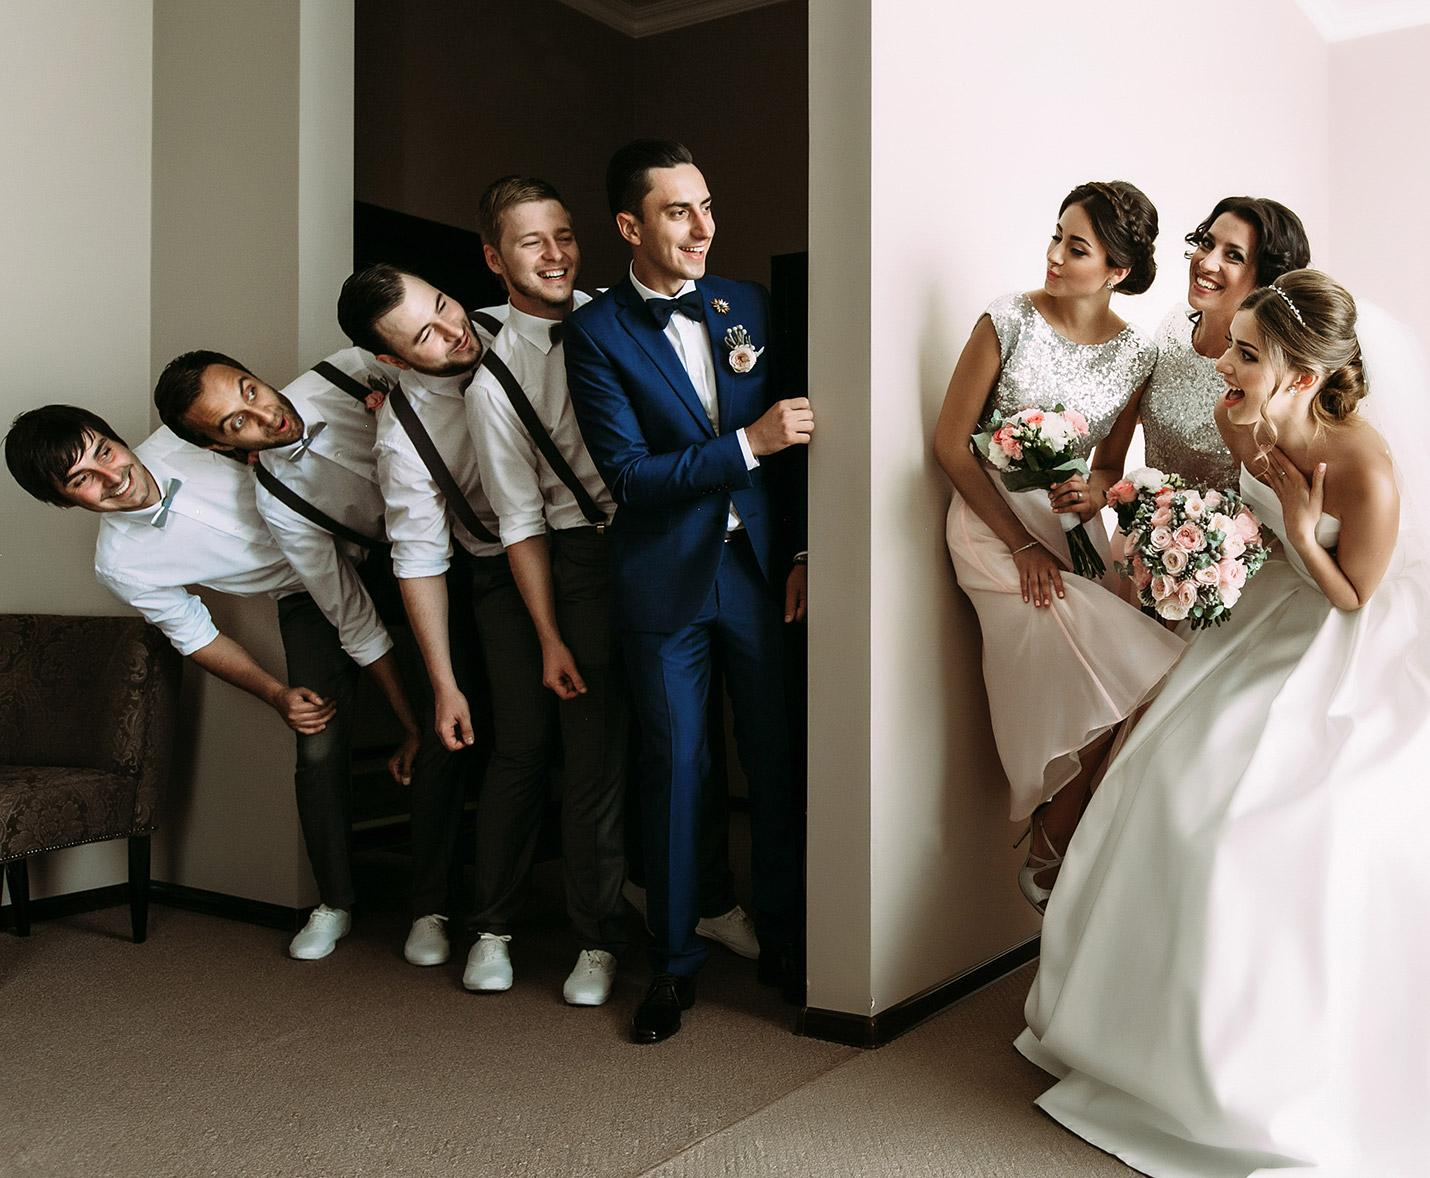 Groom and bridal party leaning past a wall